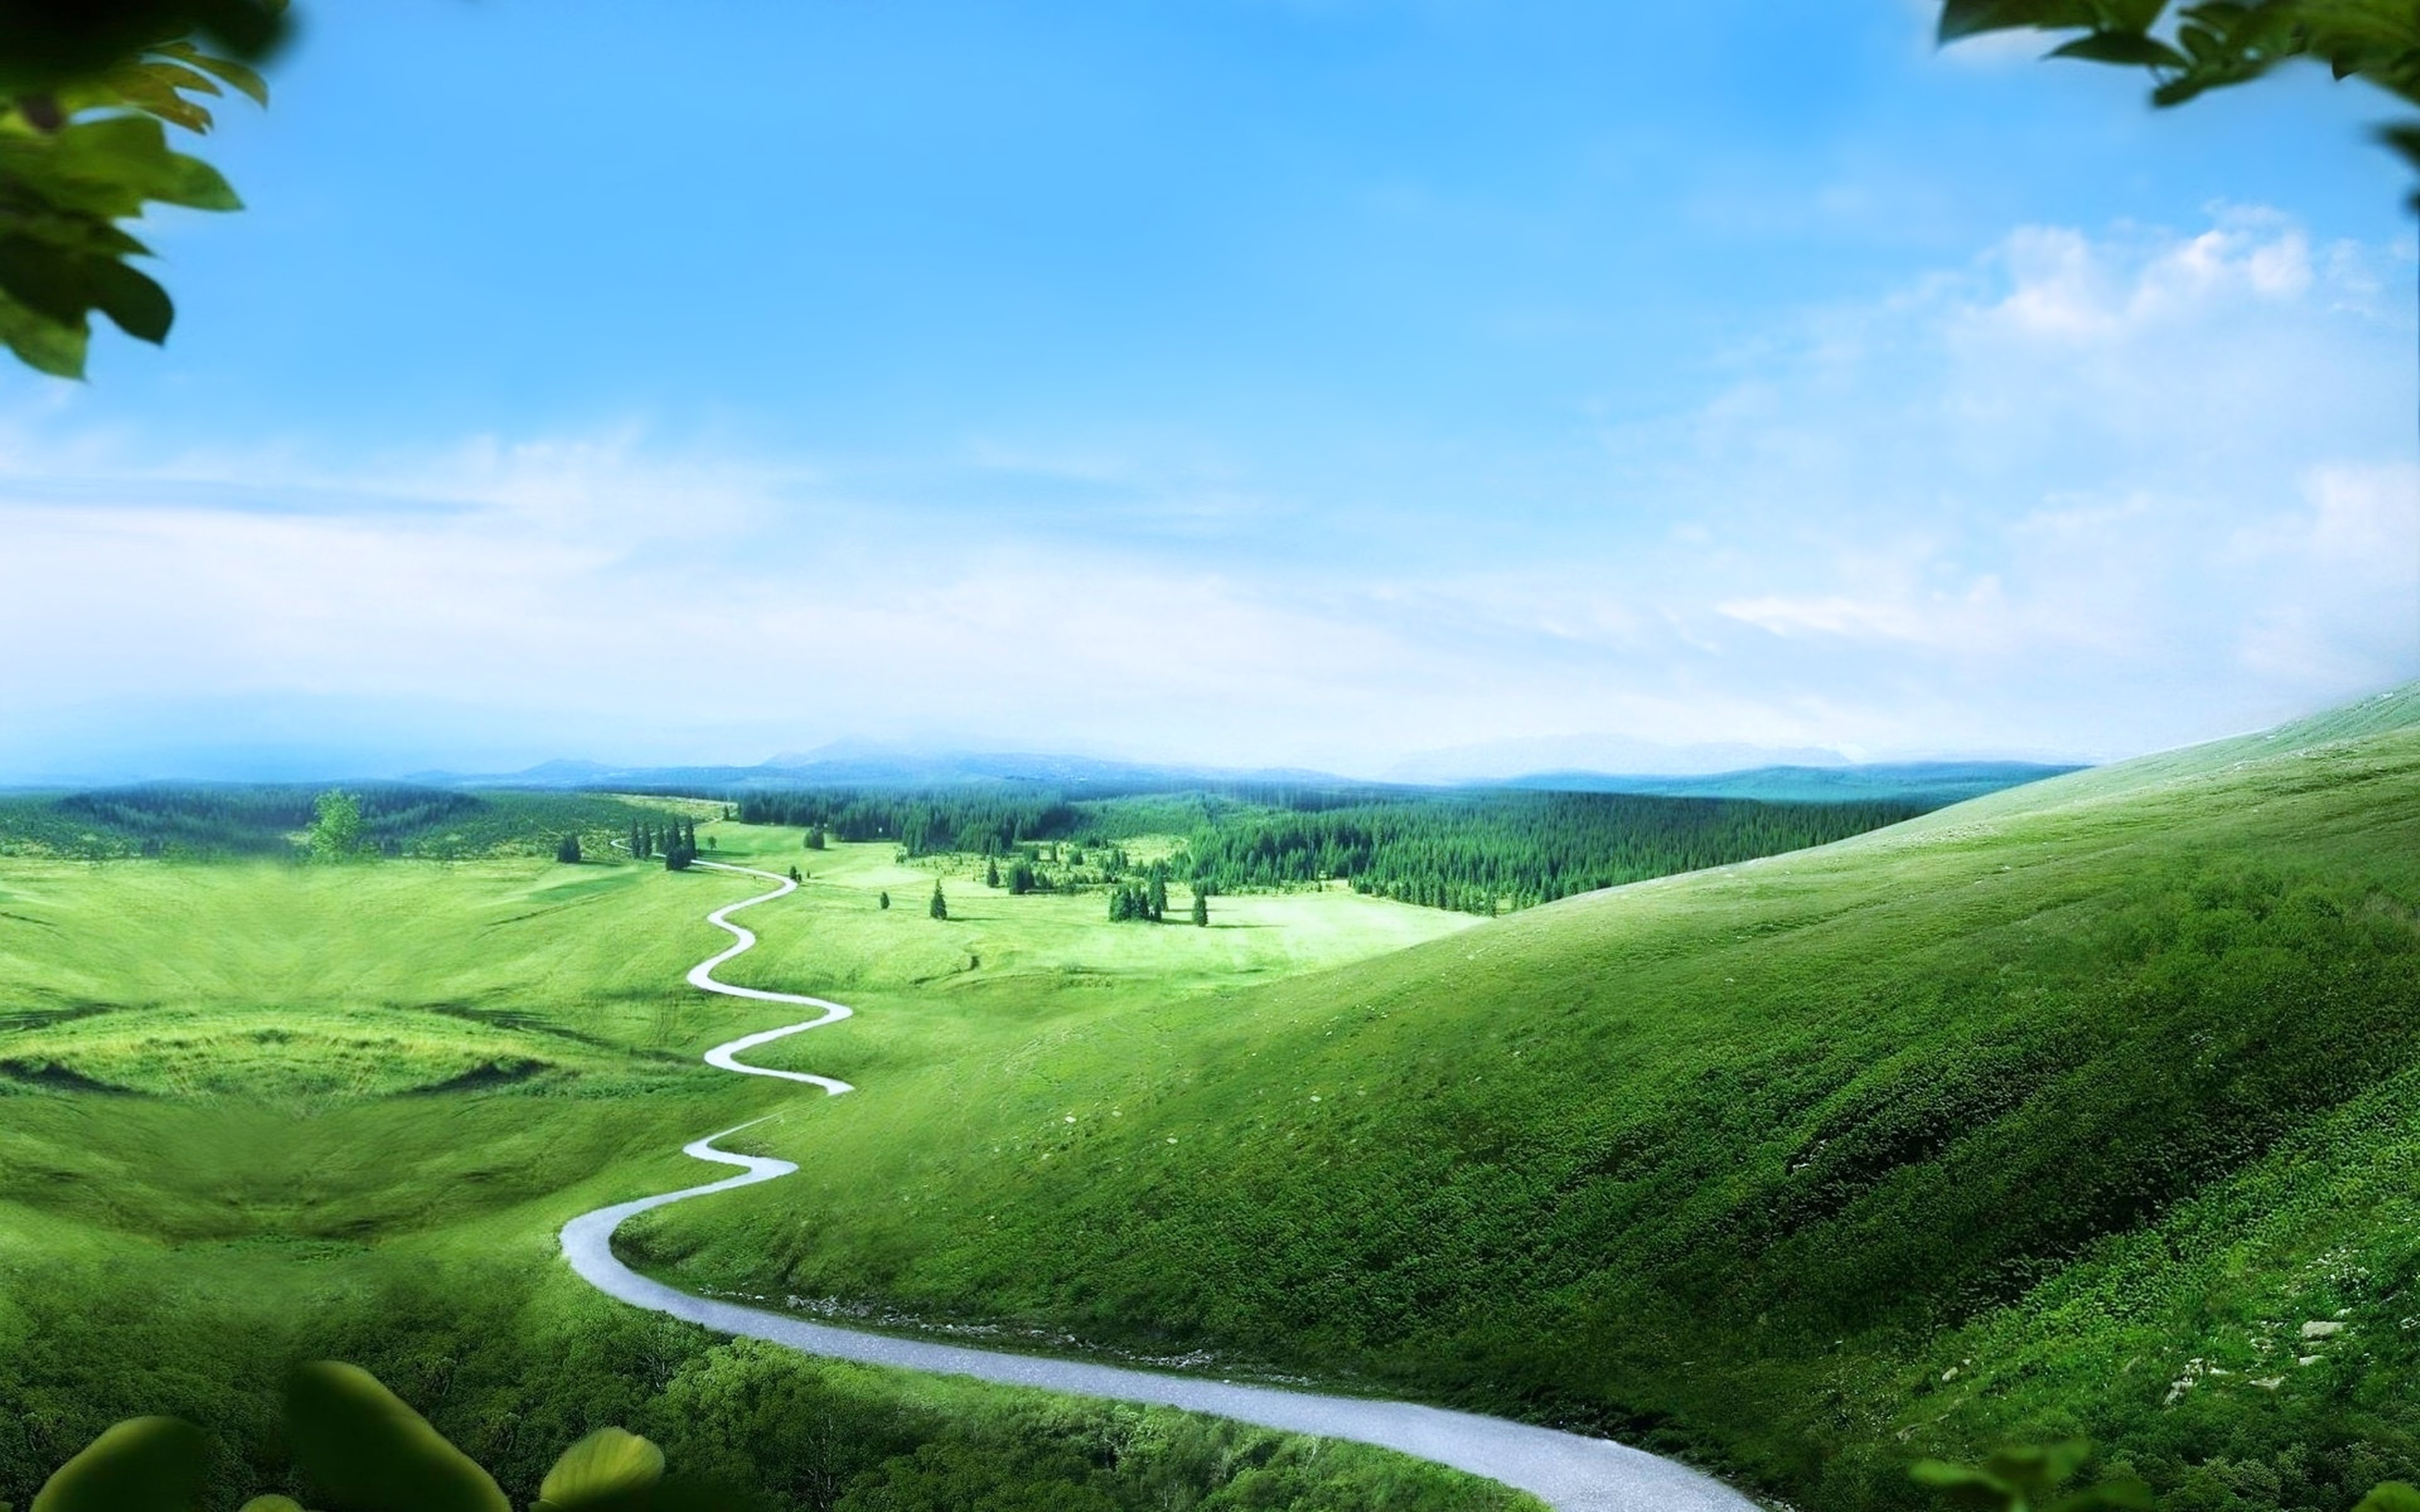 Green_landscapes_hills_road_long_way_path_trees_nature_earth_sky_clouds on Beautiful Landscape Hd Wallpaper 1920x1080